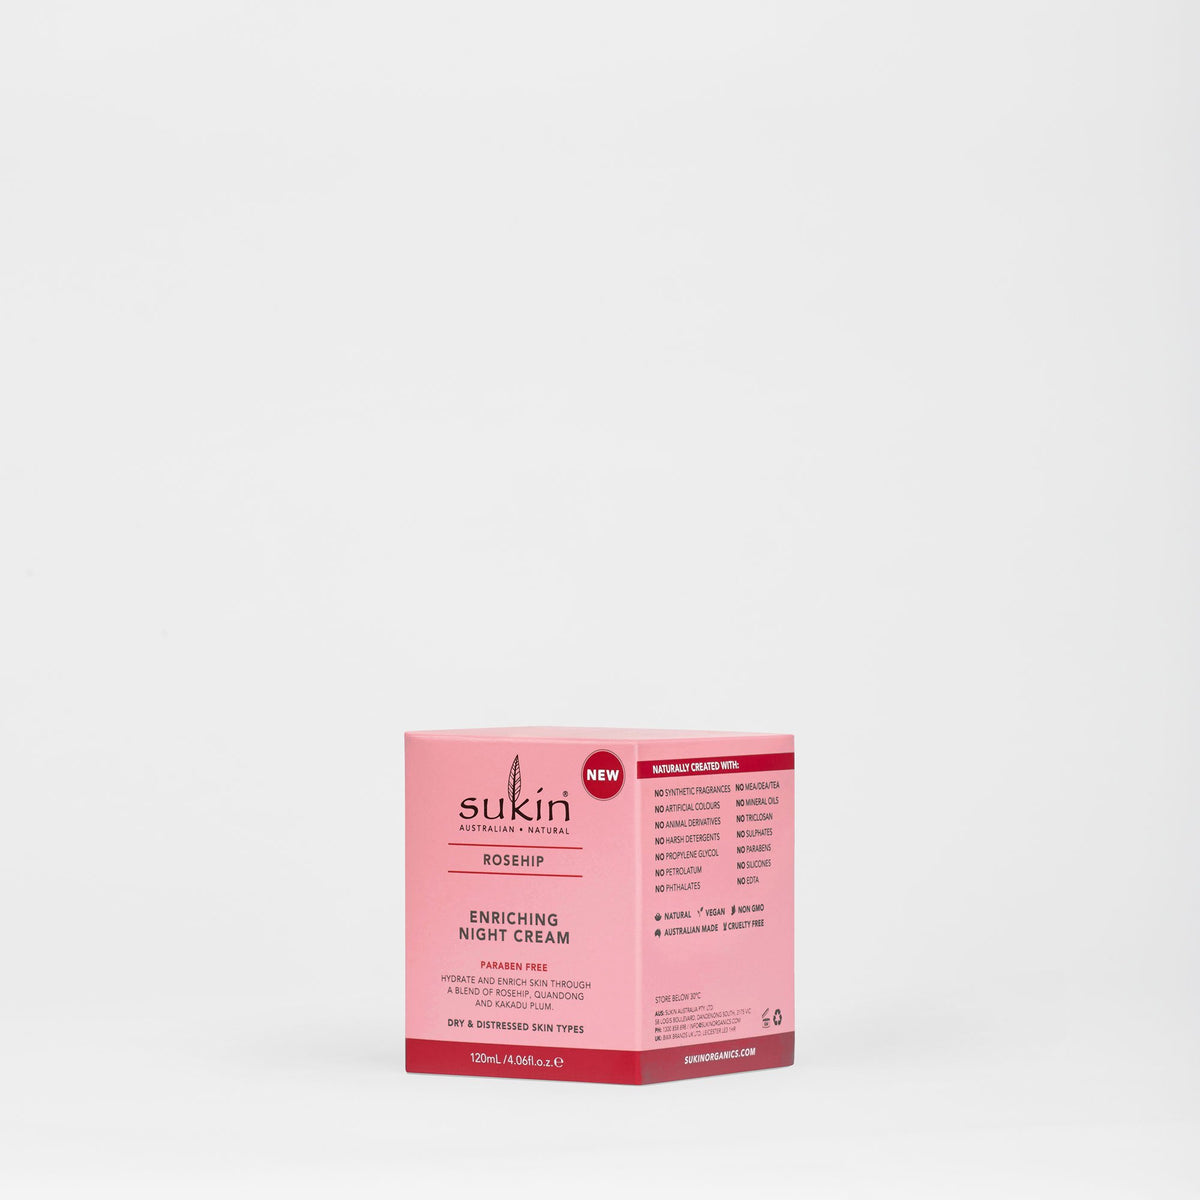 Enriching Night Cream | Rosehip 120ml